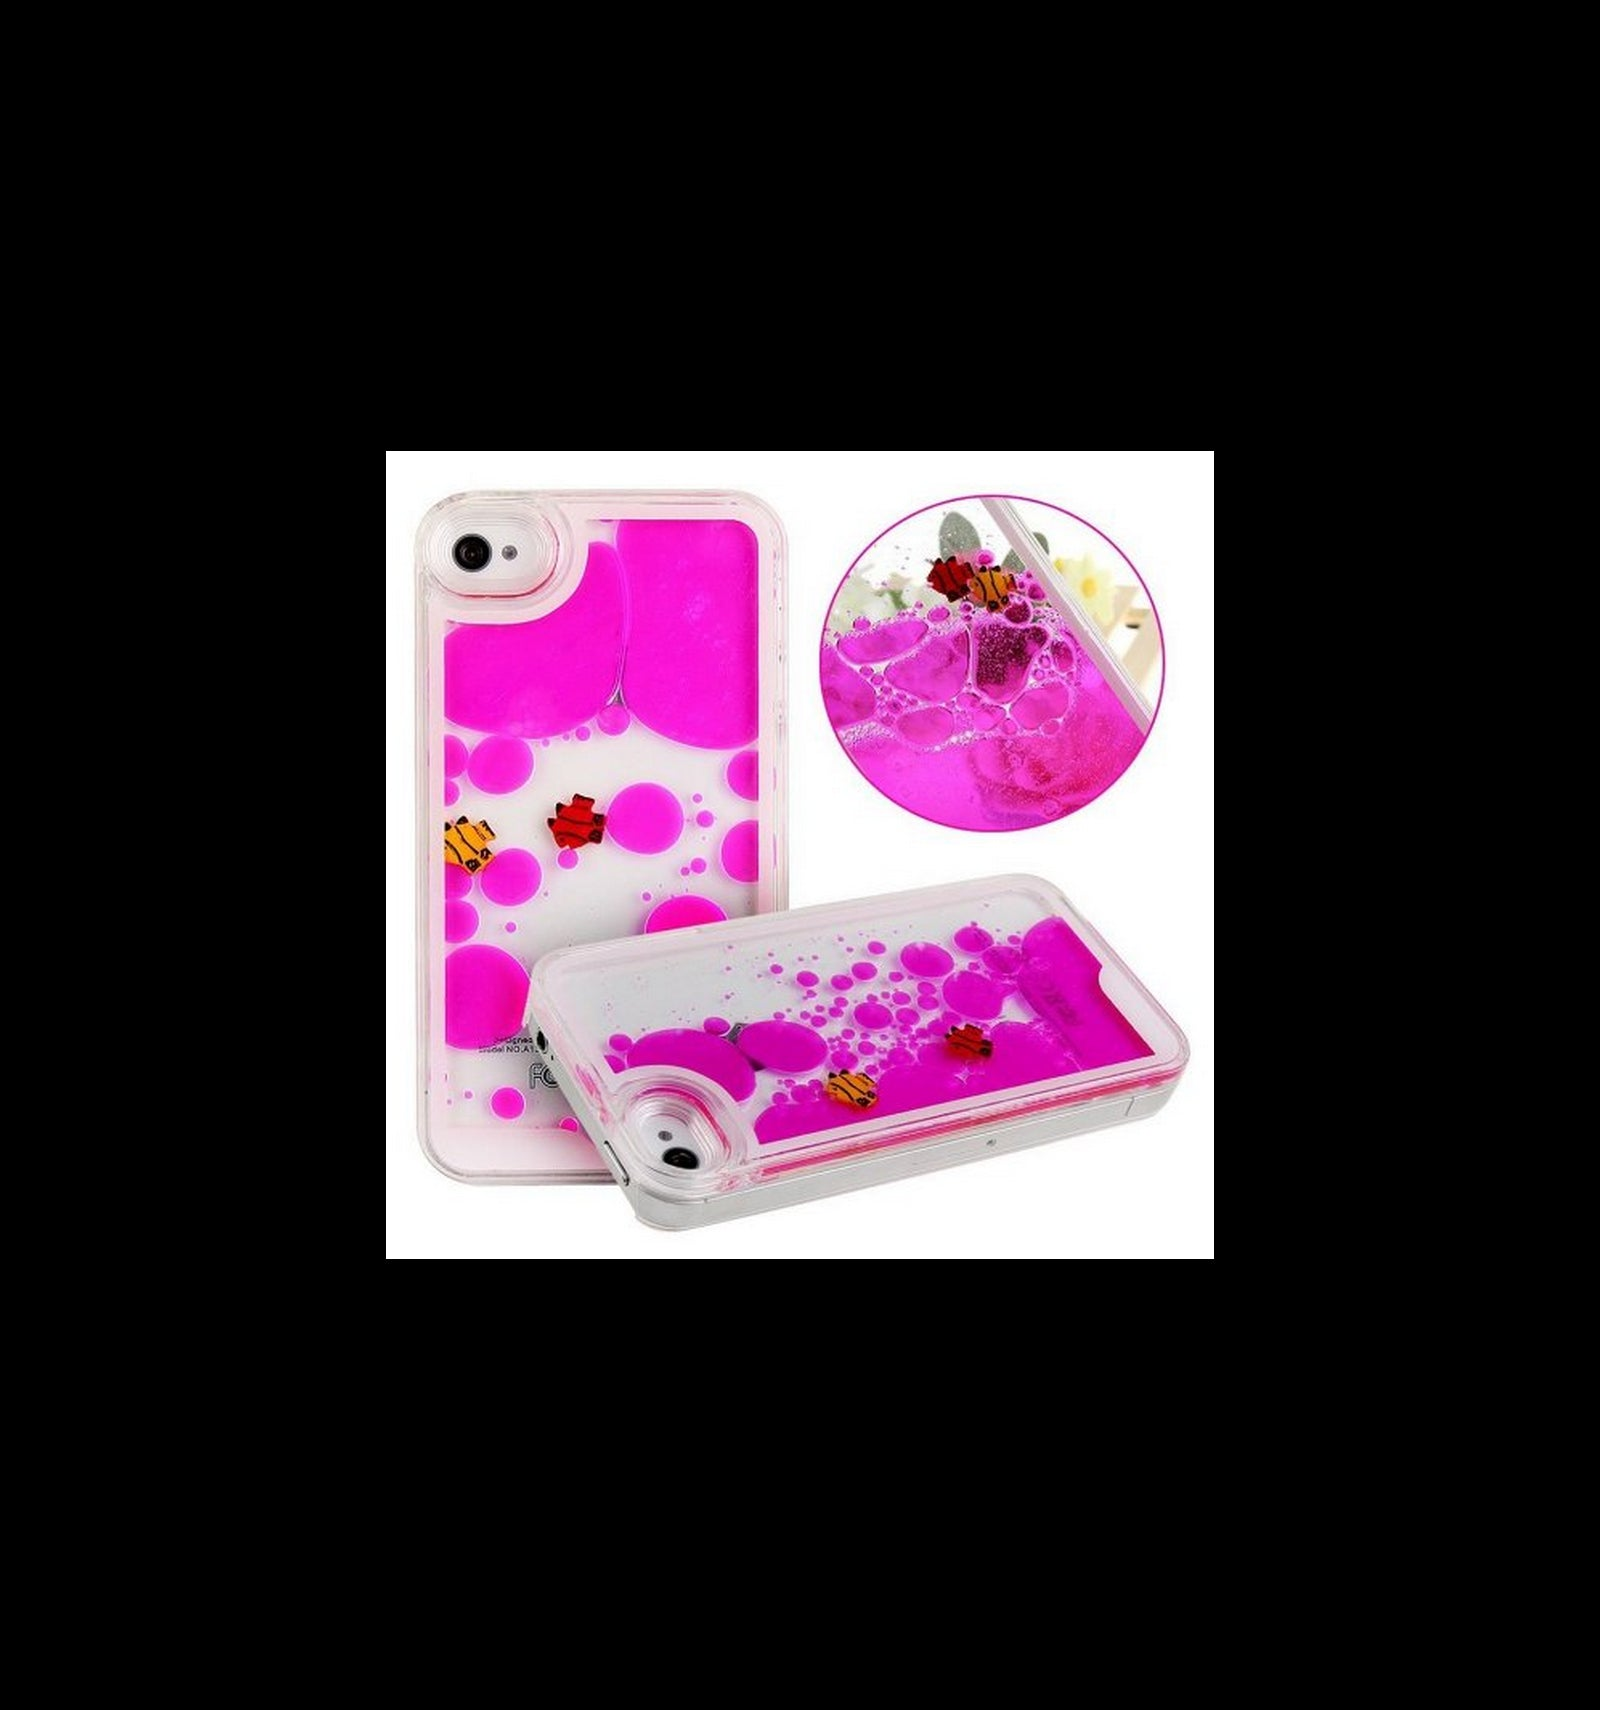 iphone 4 coques